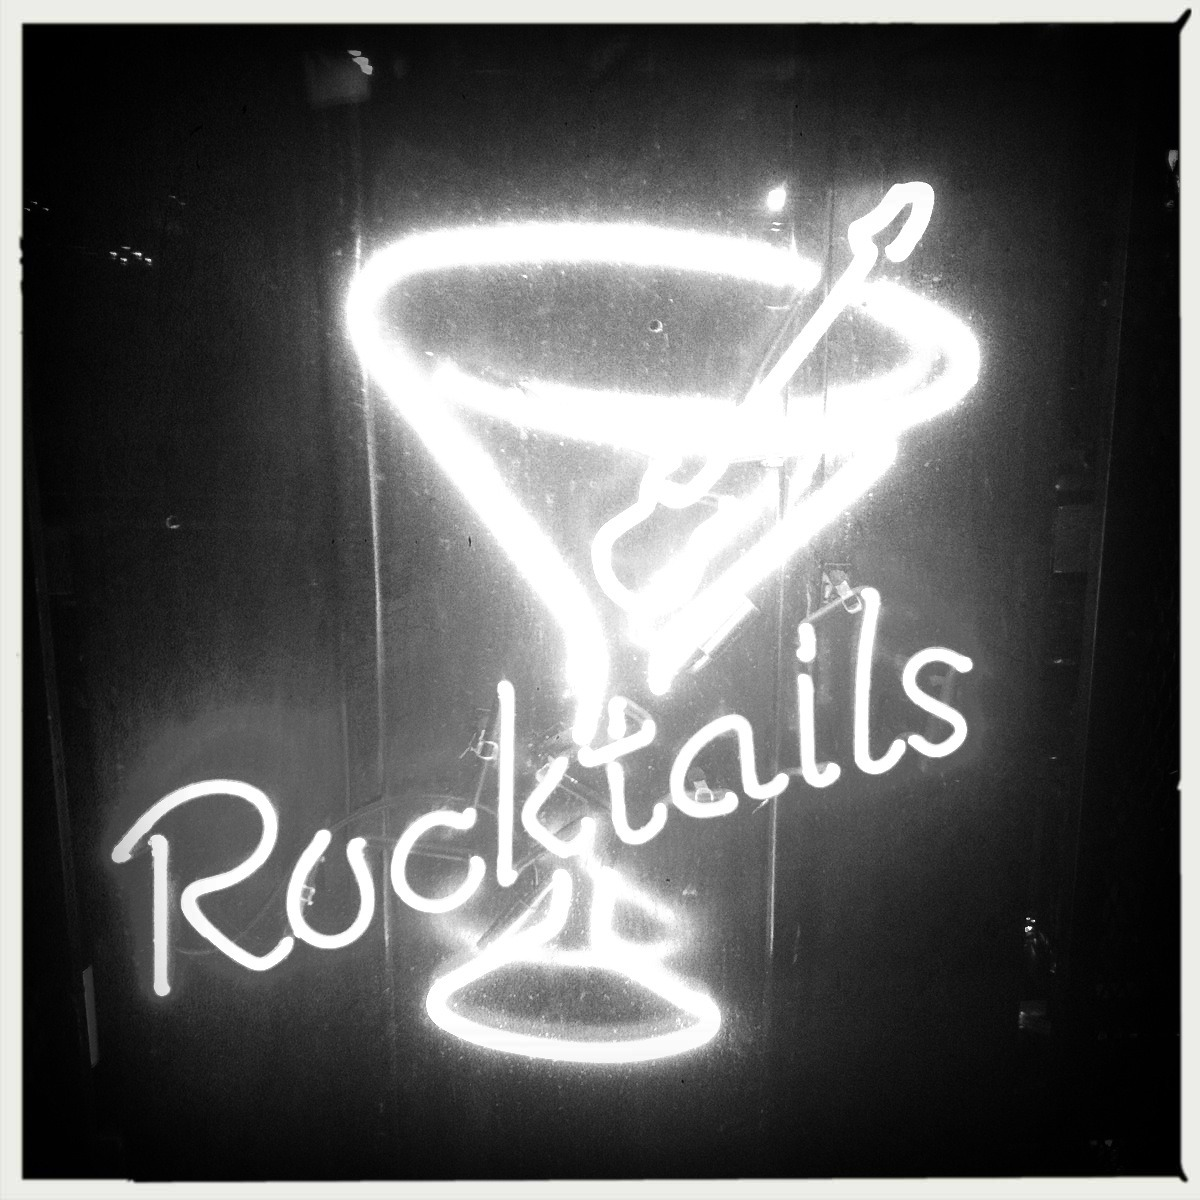 047/365 - 01.27.2012 - 'Rocktails' Photo: Zachary Brown - 2012 - iPhone 4 w/ Hipstamatic  This work is licensed under a Creative Commons Attribution-NonCommercial-NoDerivs 3.0 Unported License.